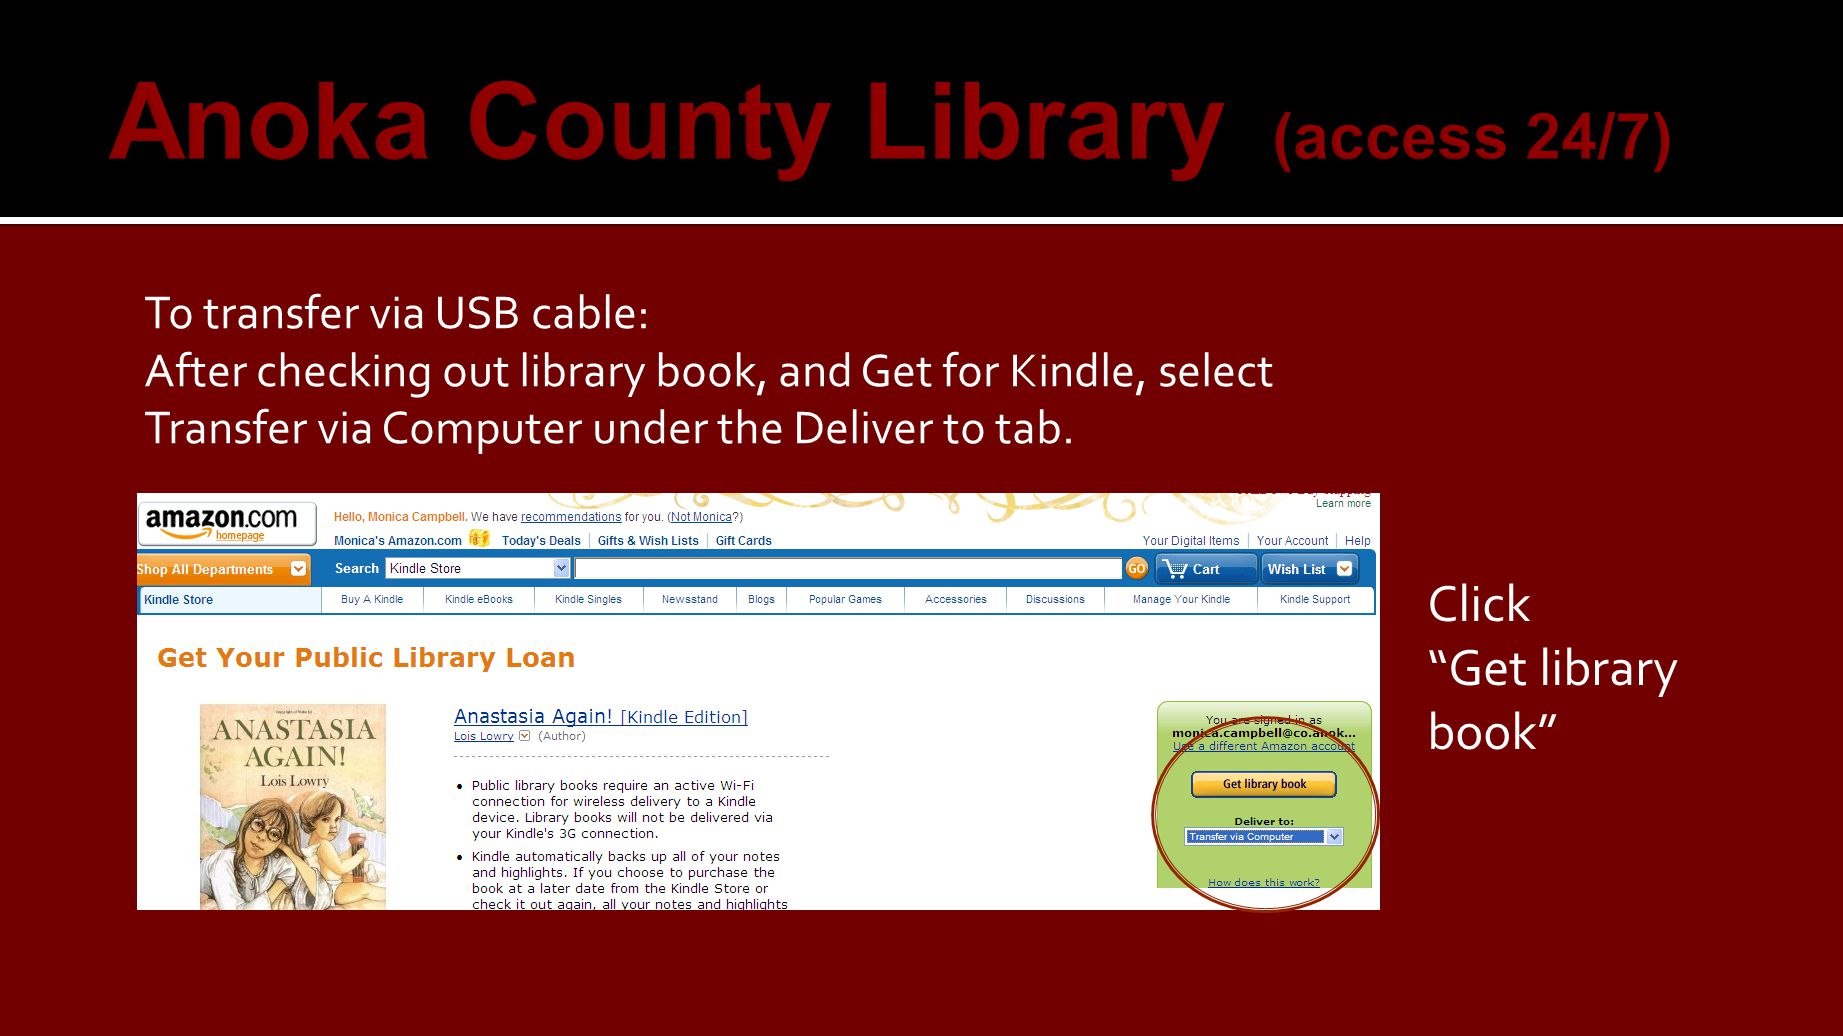 To transfer via USB cable: After checking out library book, and Get for Kindle, select Transfer via Computer under the Deliver to tab.